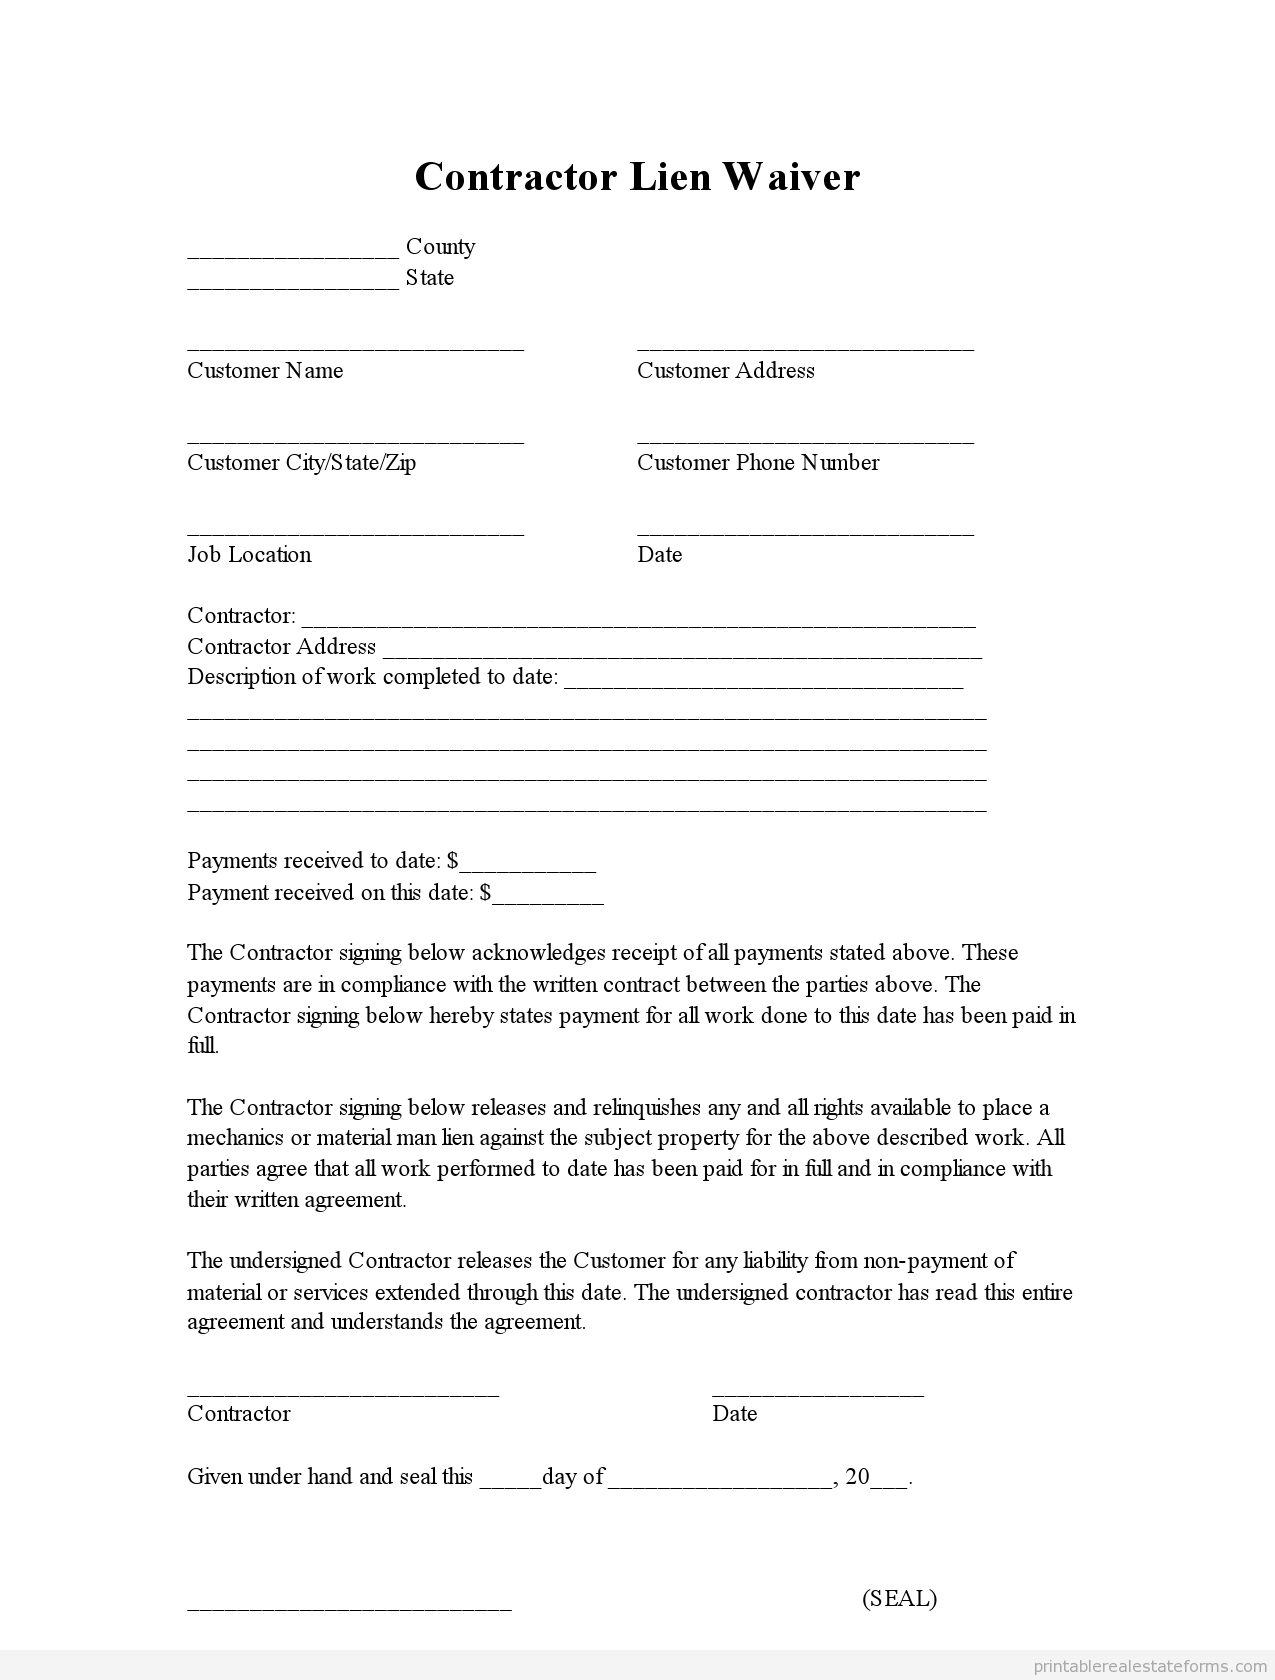 sample printable contractor lien waiver form printable real estate forms 2014 pinterest. Black Bedroom Furniture Sets. Home Design Ideas